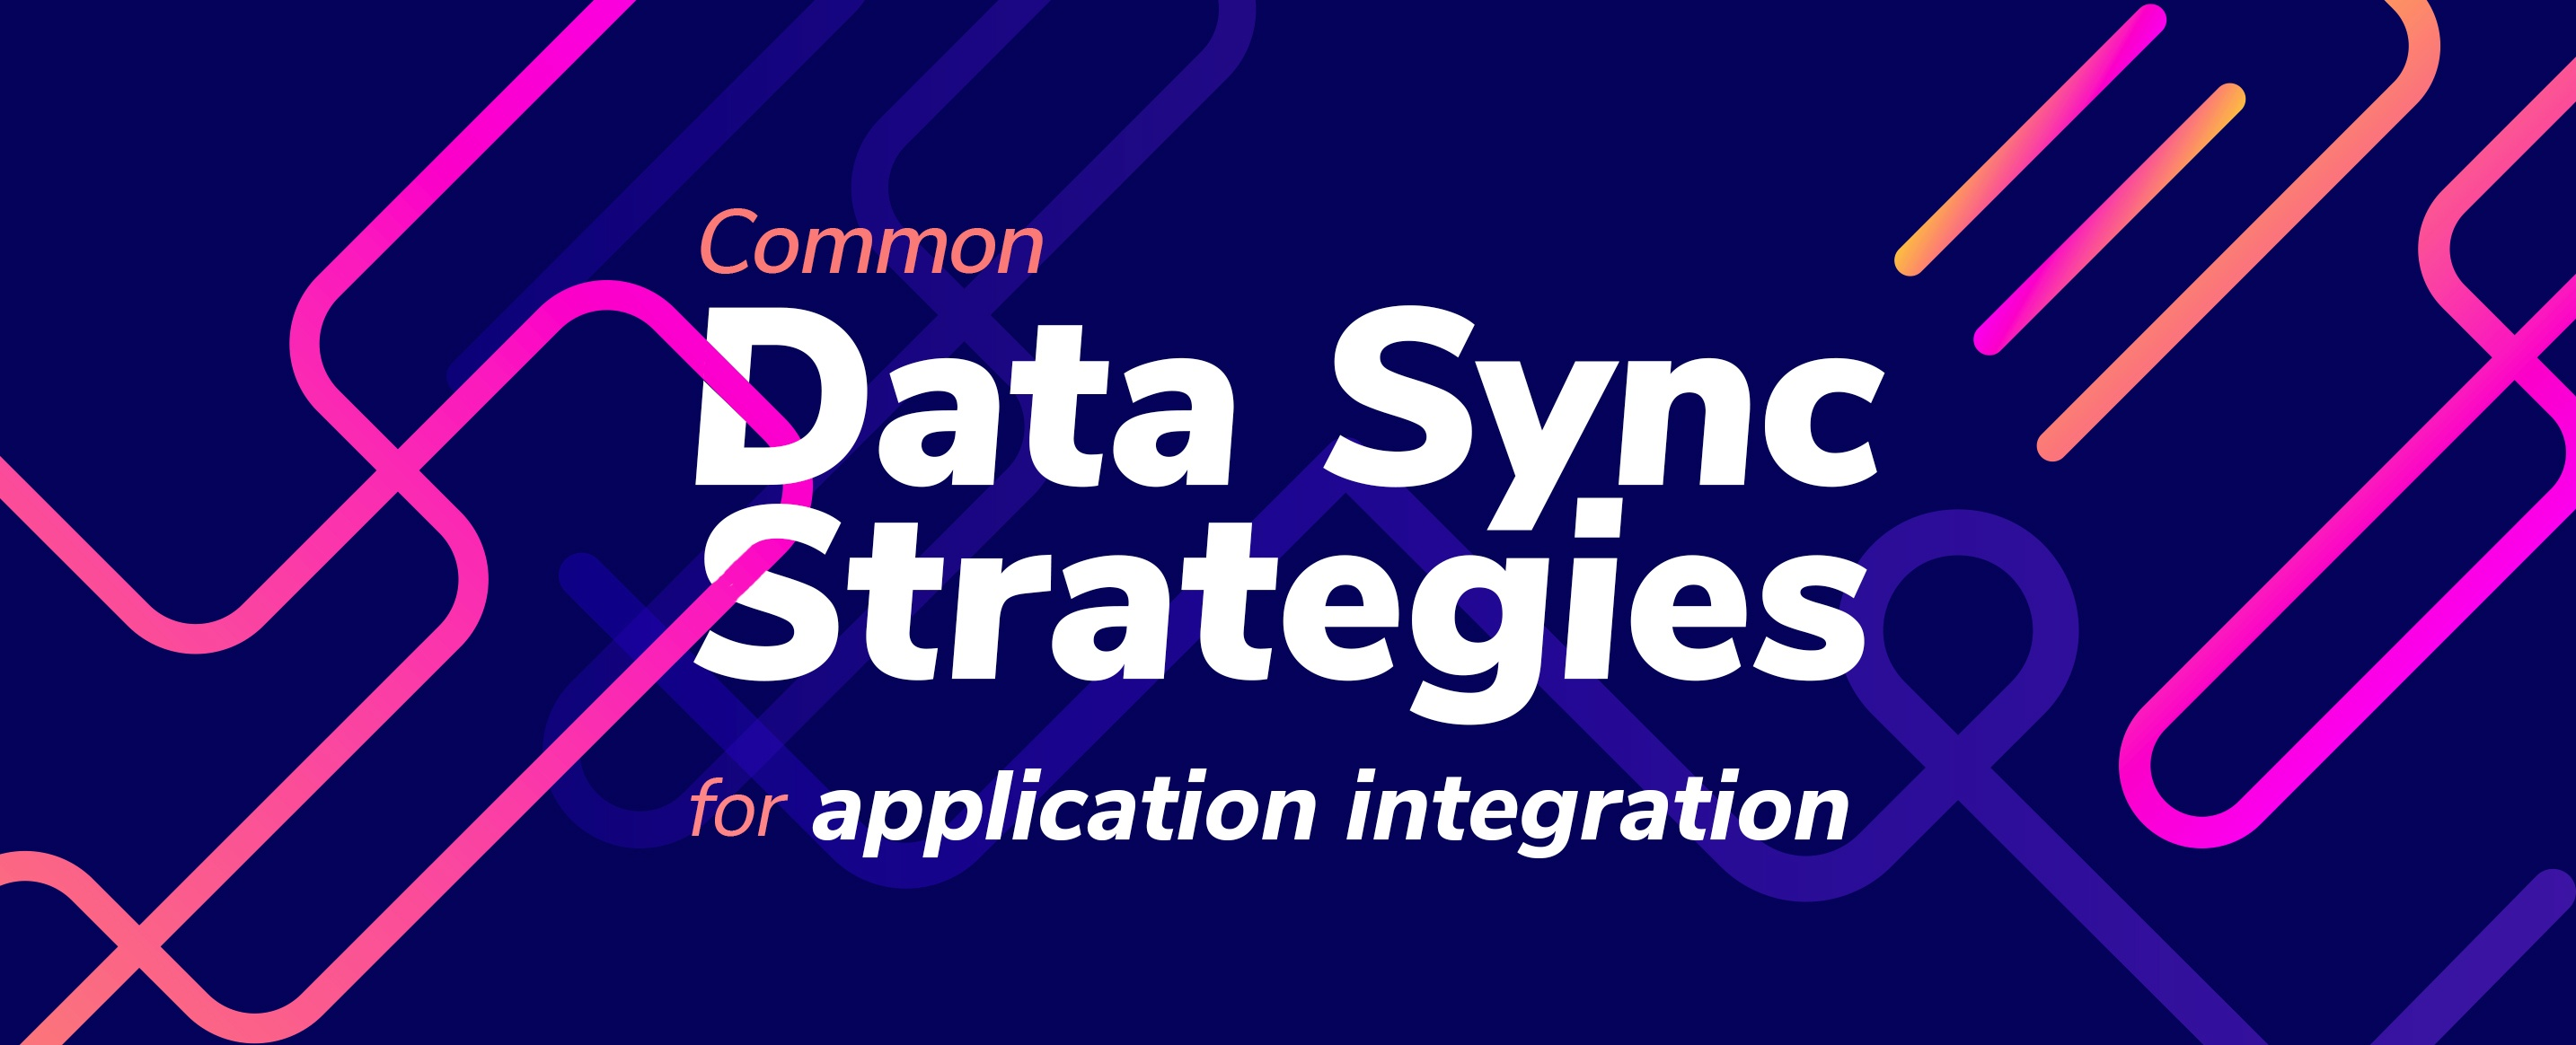 Common-Data-Sync-Strategies-for-application-integration